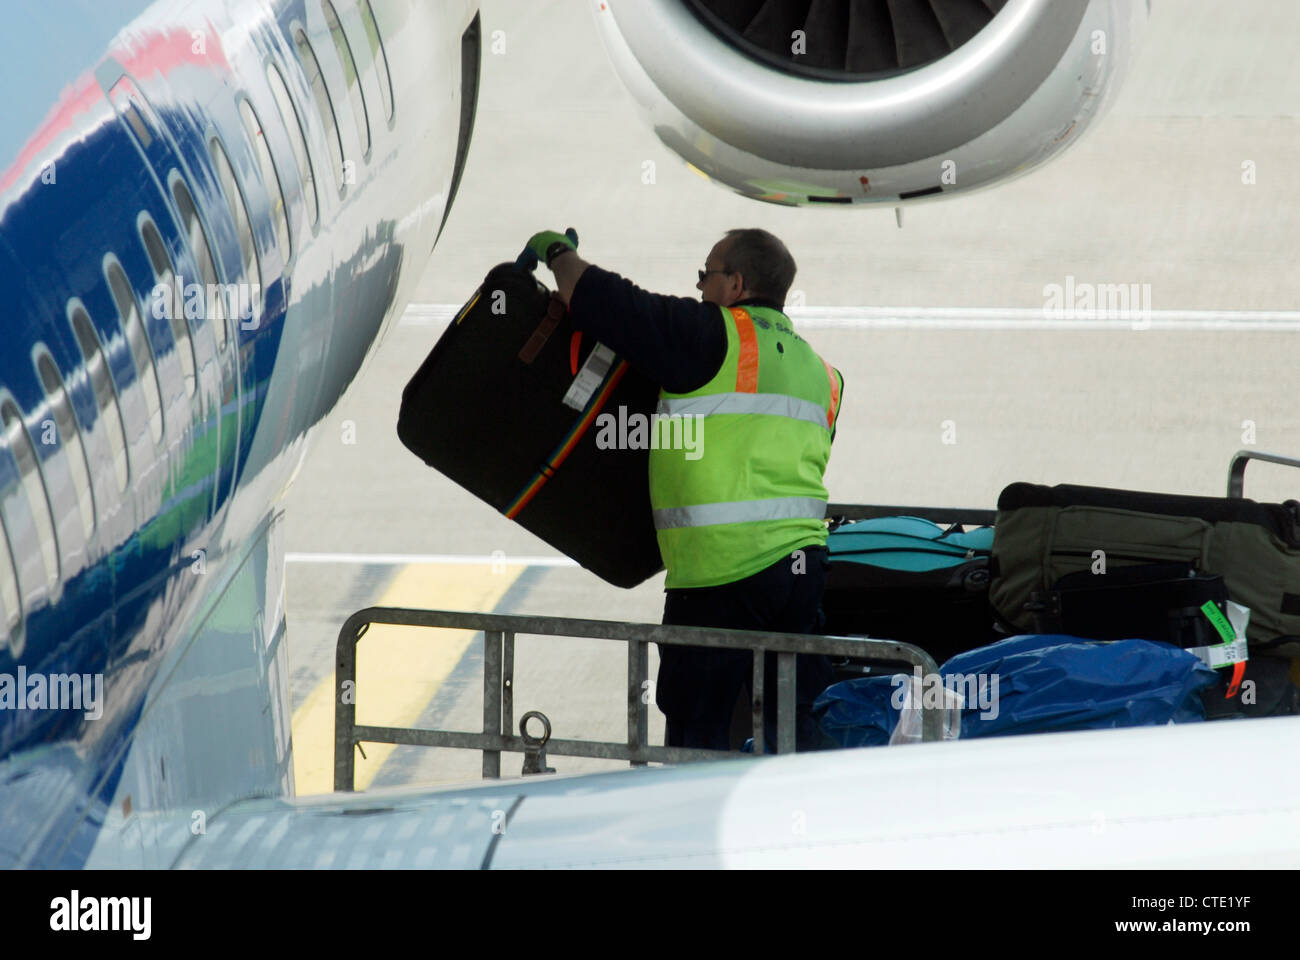 A baggage handler loads unloads bags luggage suitcases to into from an aircraft at Edinburgh airport - Stock Image